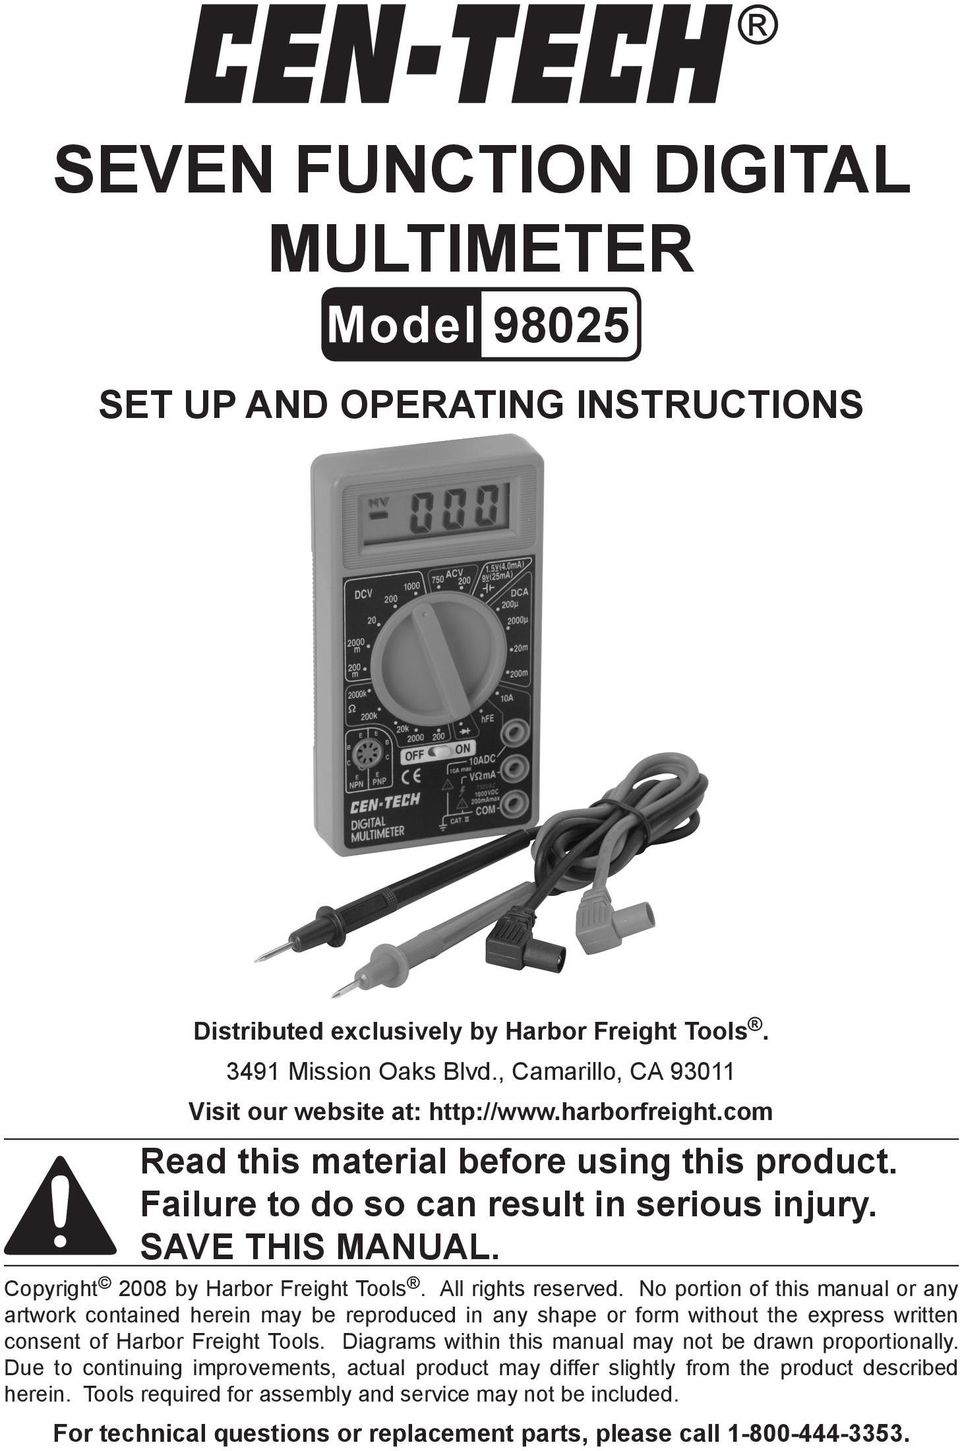 Copyright 2008 by Harbor Freight Tools. All rights reserved.